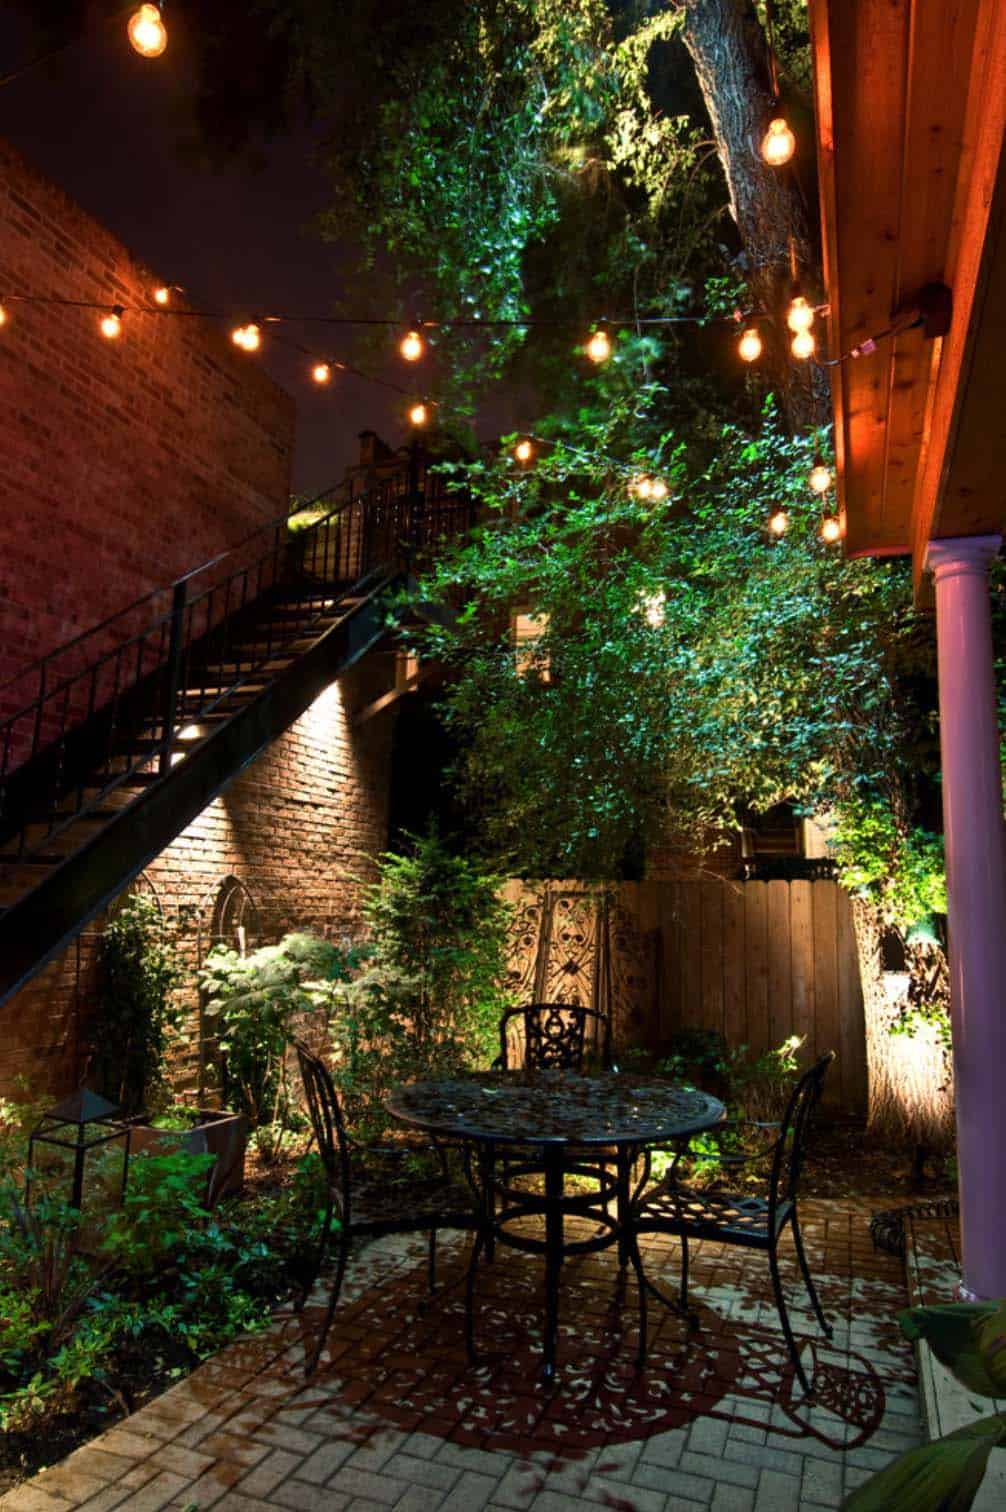 25 Very inspiring string light ideas for magical outdoor ...